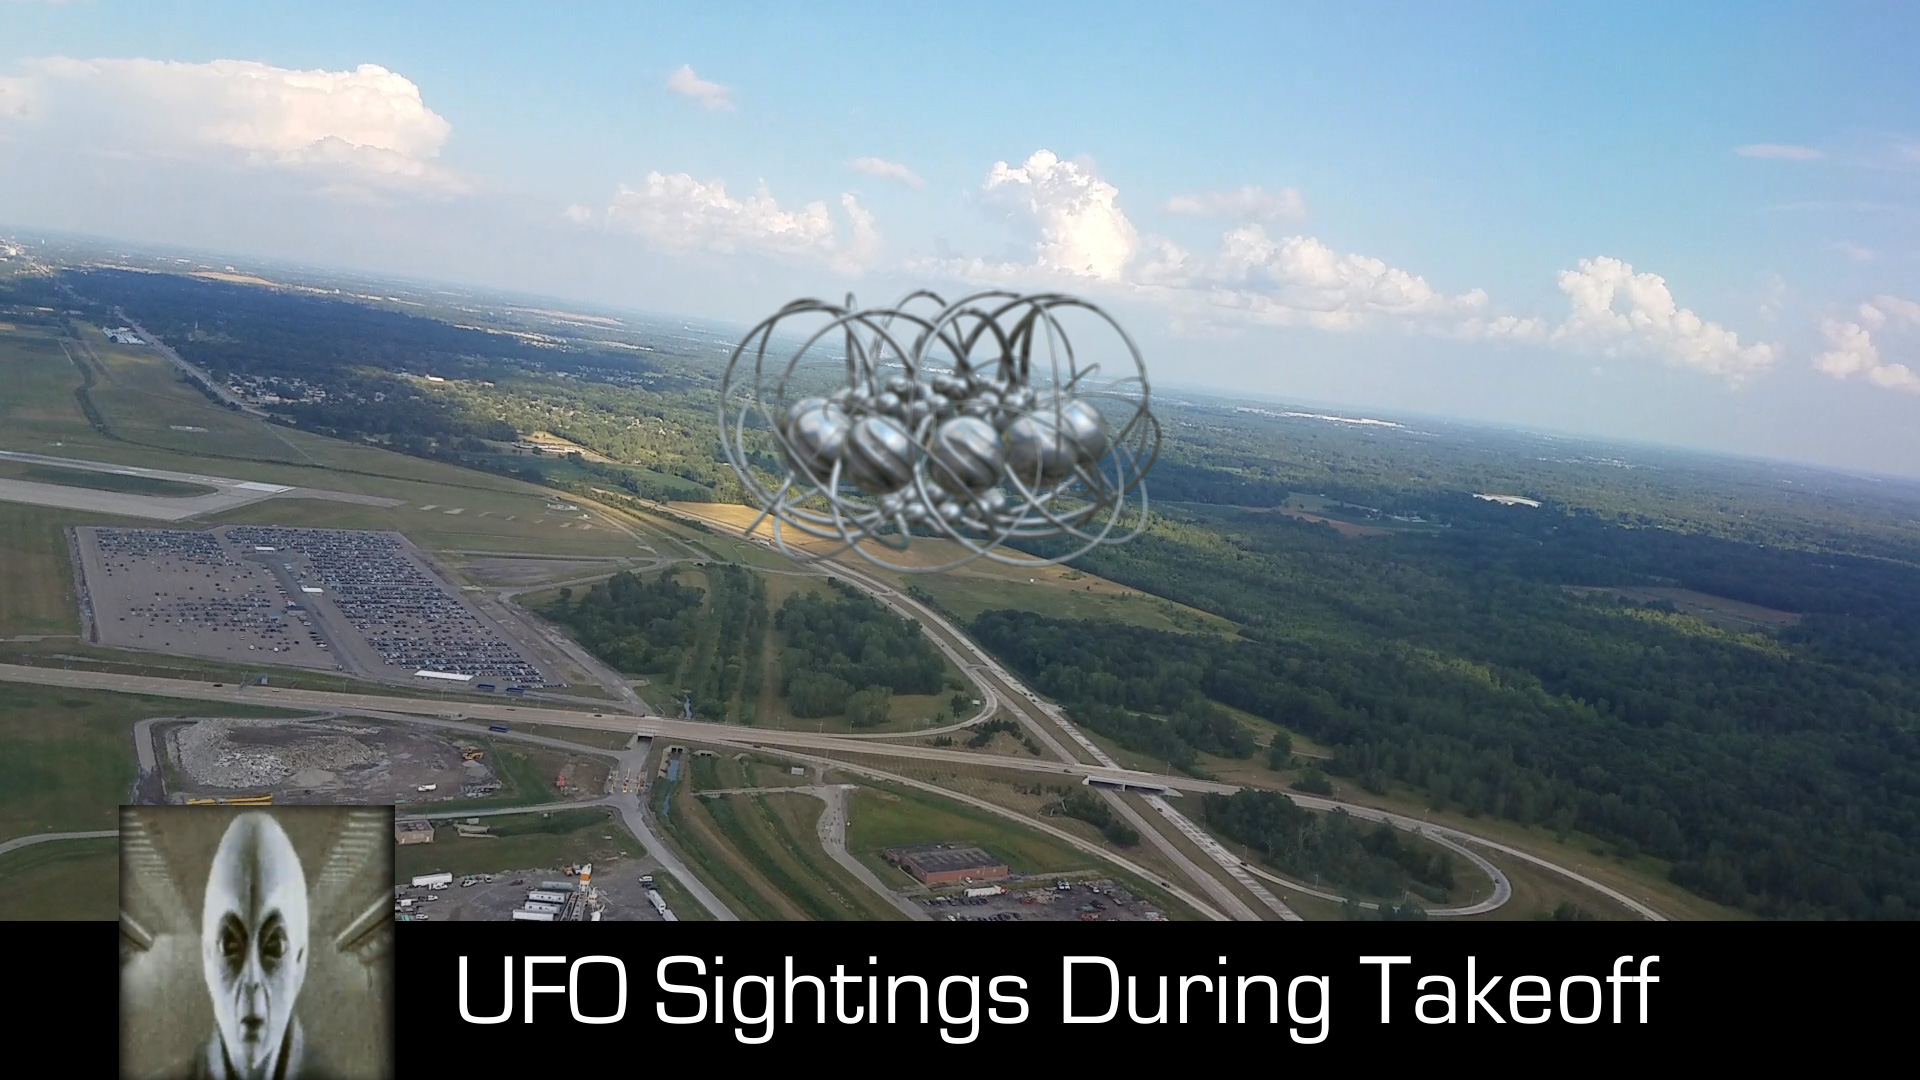 UFO Sightings During Takeoff